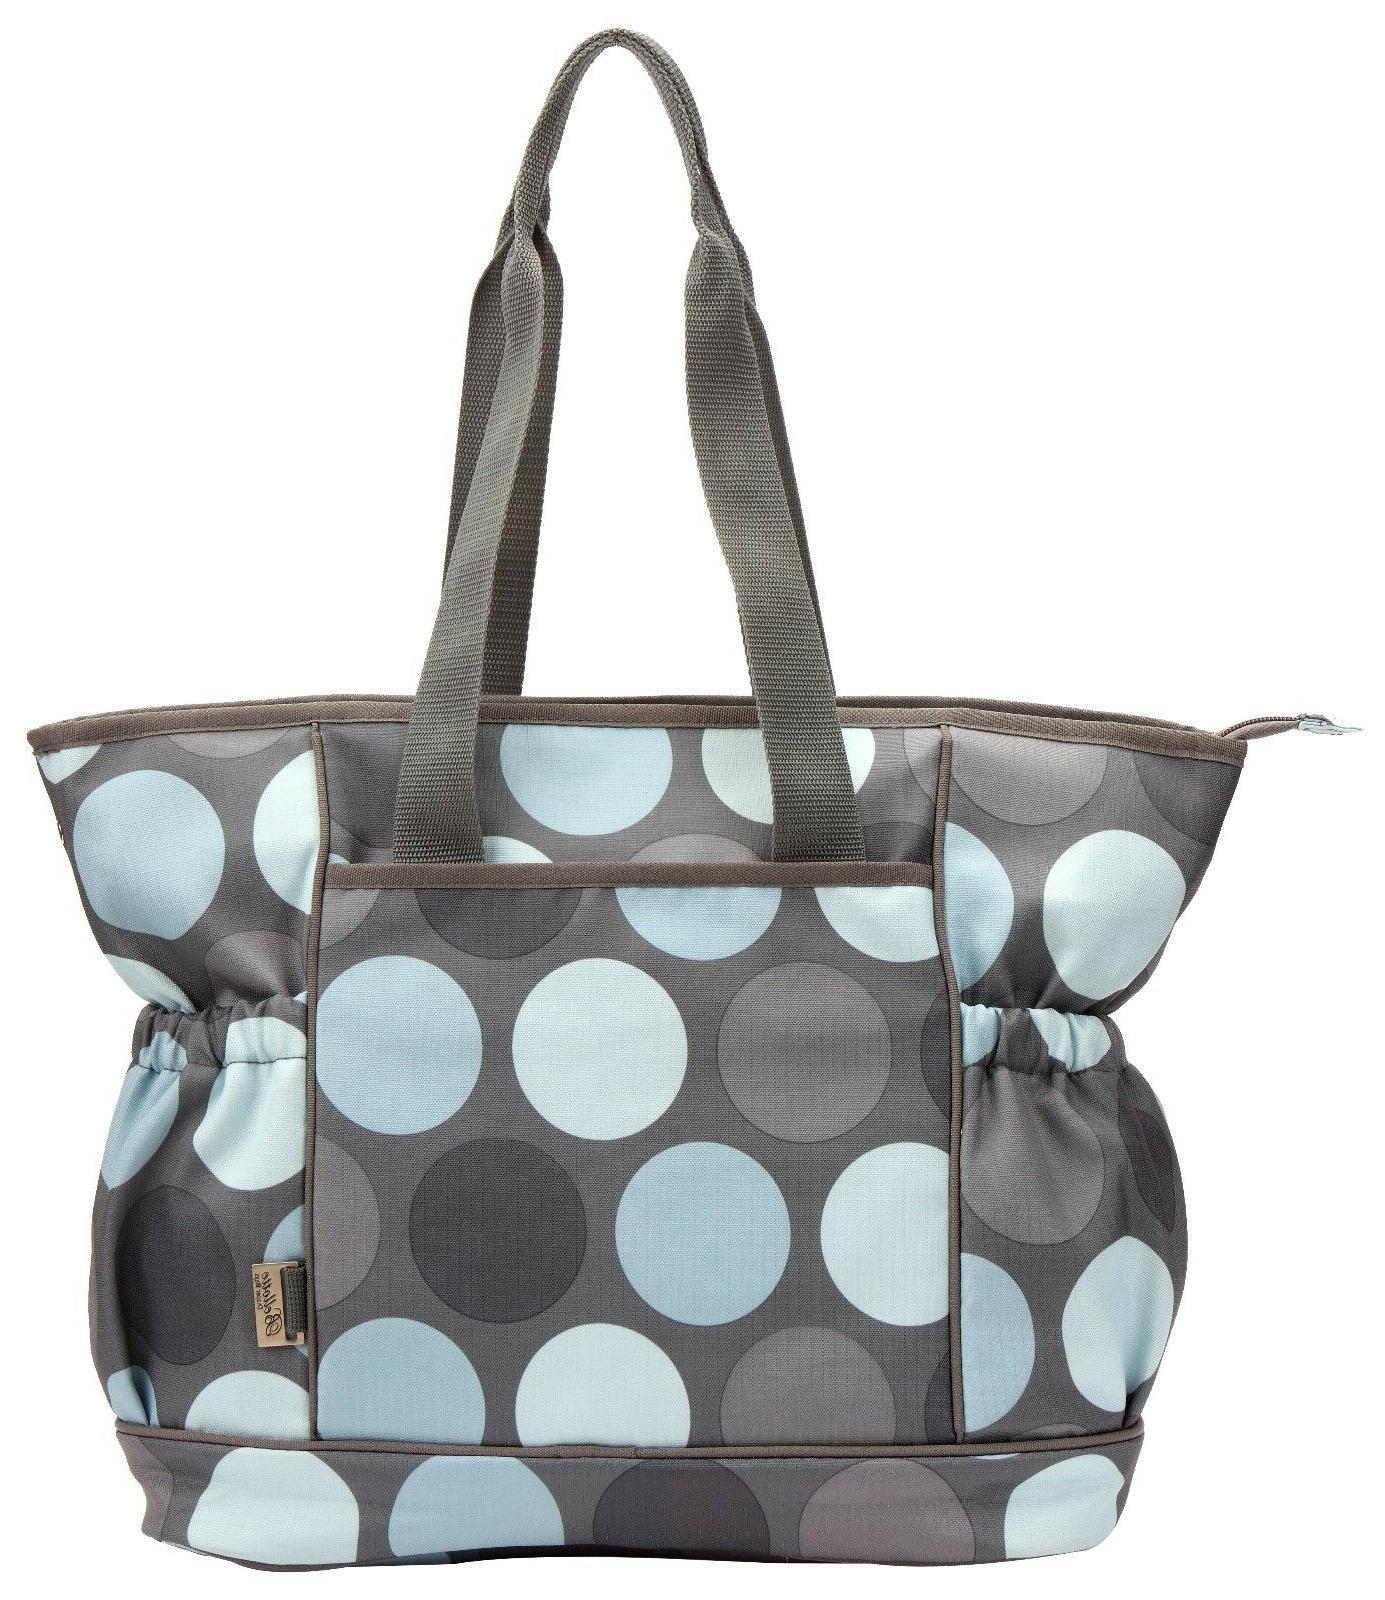 Bellotte Stylish Tote Diaper Bag with